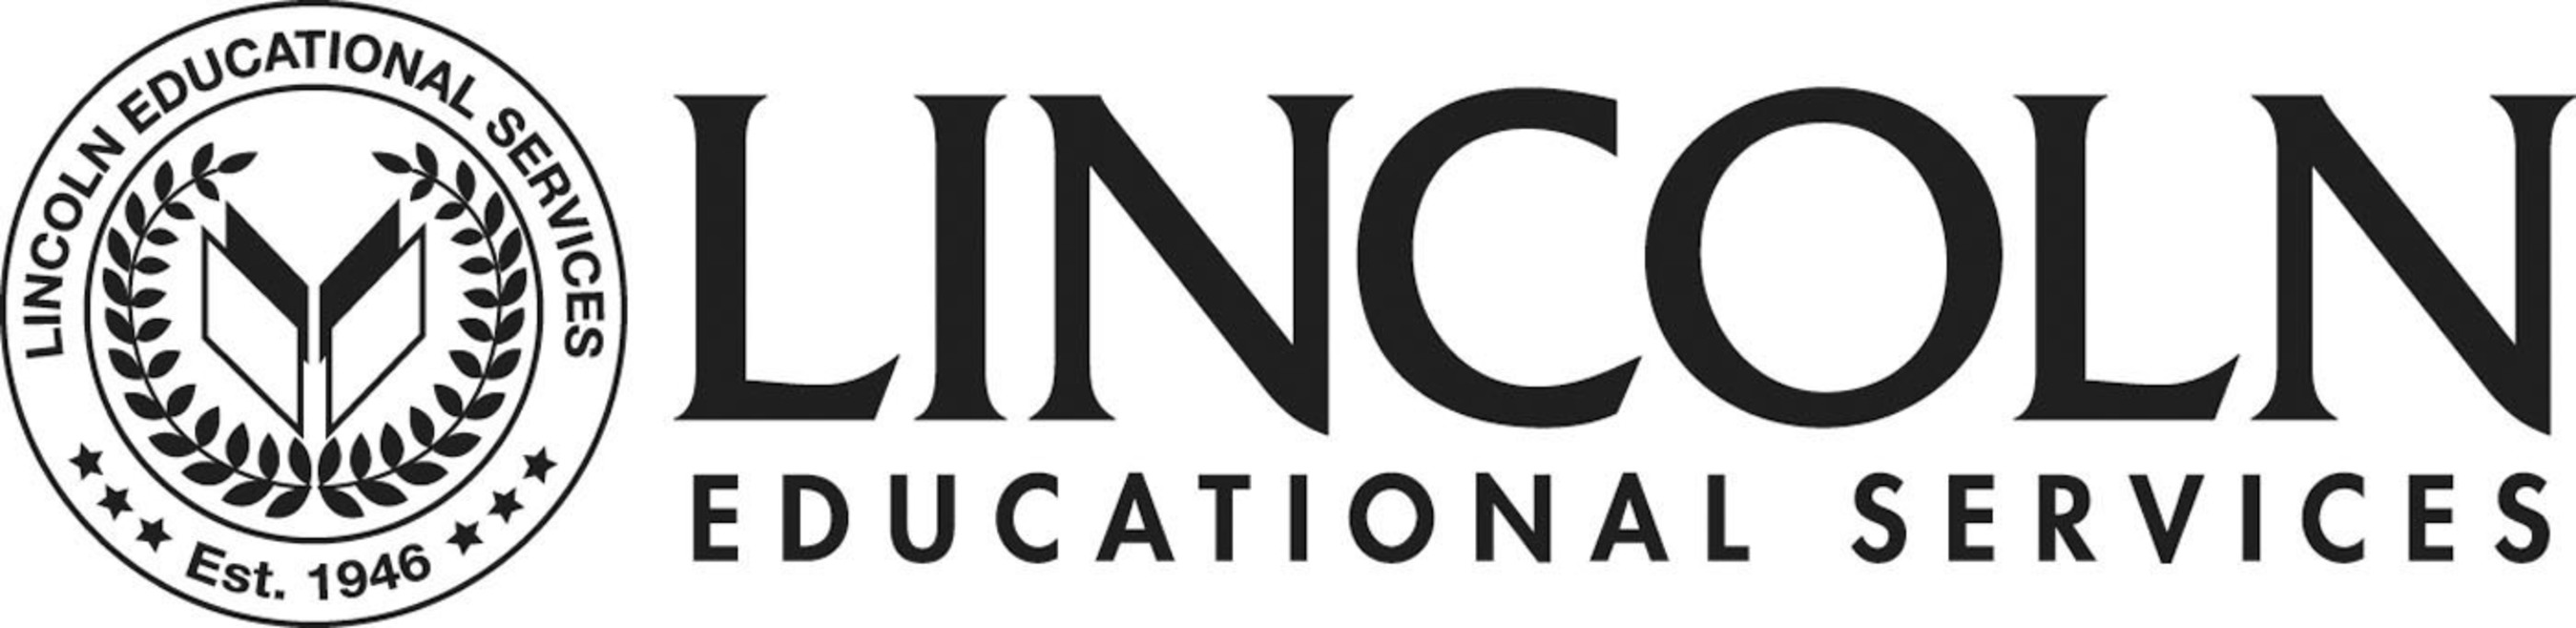 Lincoln Educational Services Corporation.